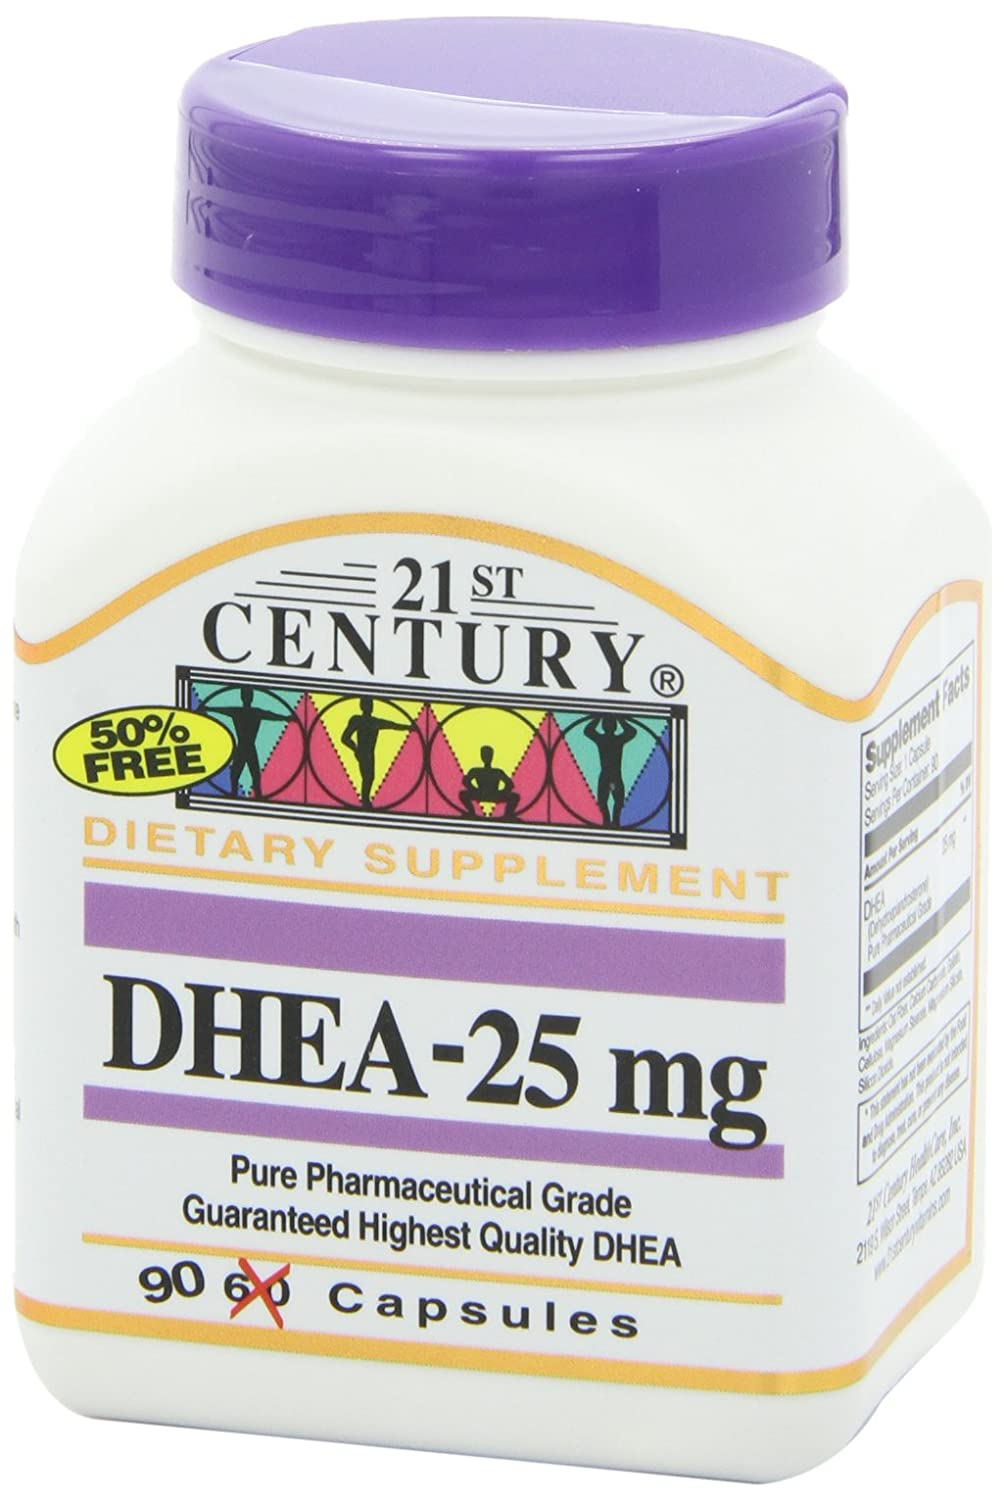 Amazon.com: 21st Century DHEA 25 mg Capsules, 90 Count: Health & Personal Care